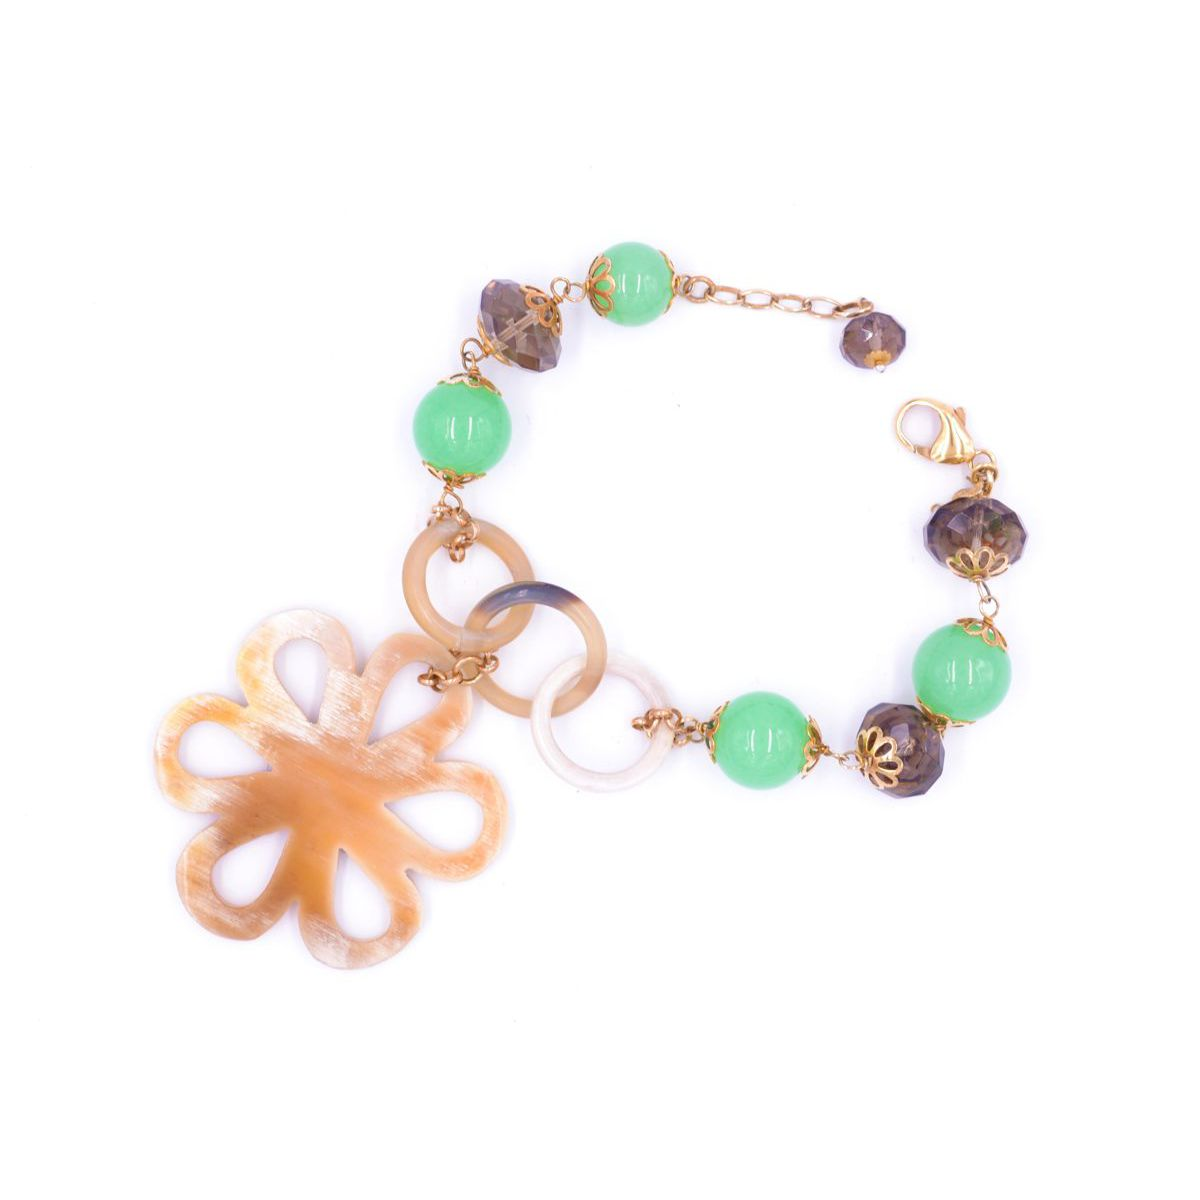 AGATA BRACELET WITH HORN'S FLOWER Green BRASS Gioielli